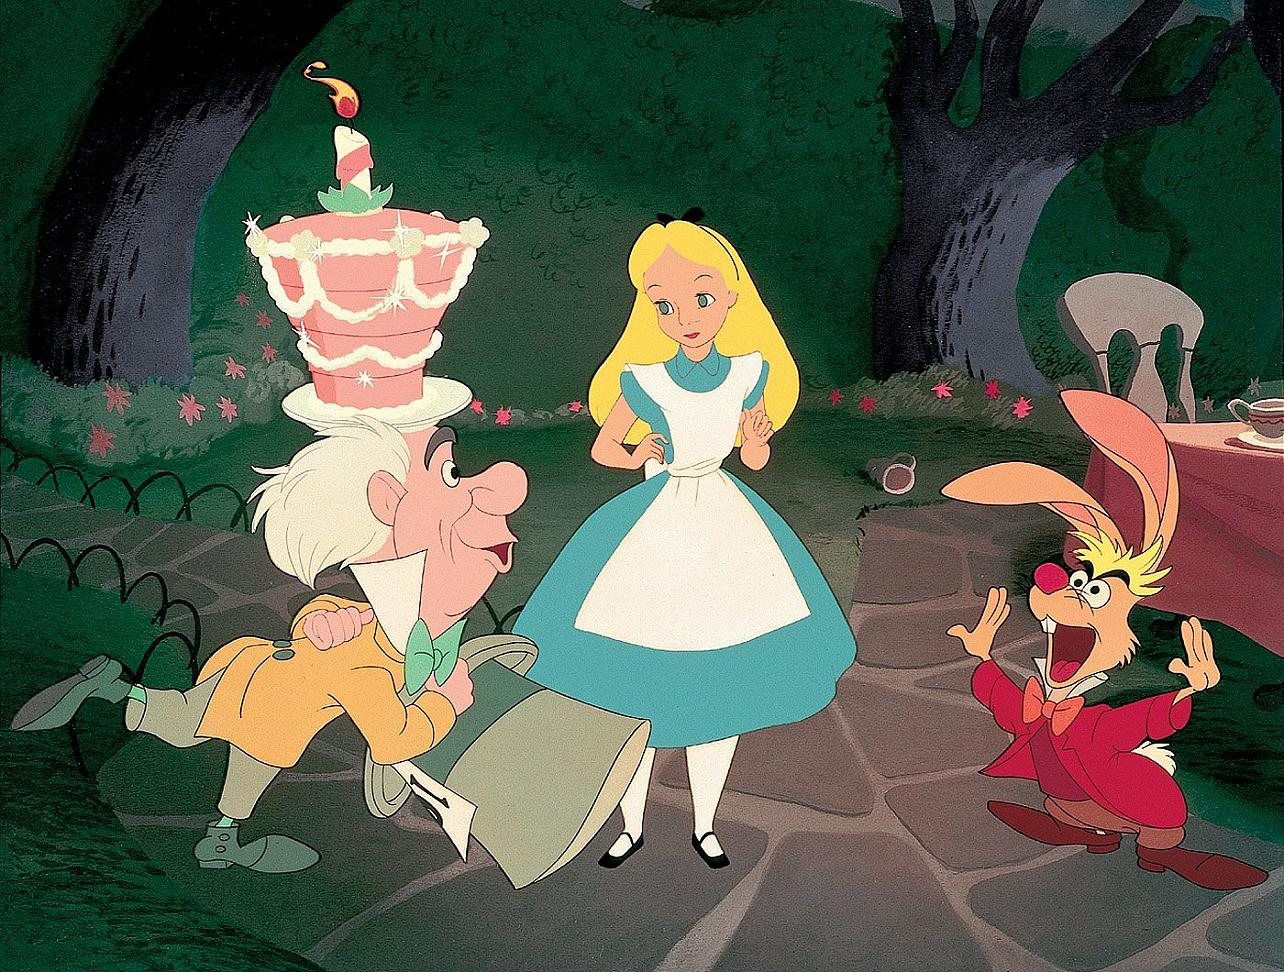 Quotes To Remember From Alices Adventures in Wonderland